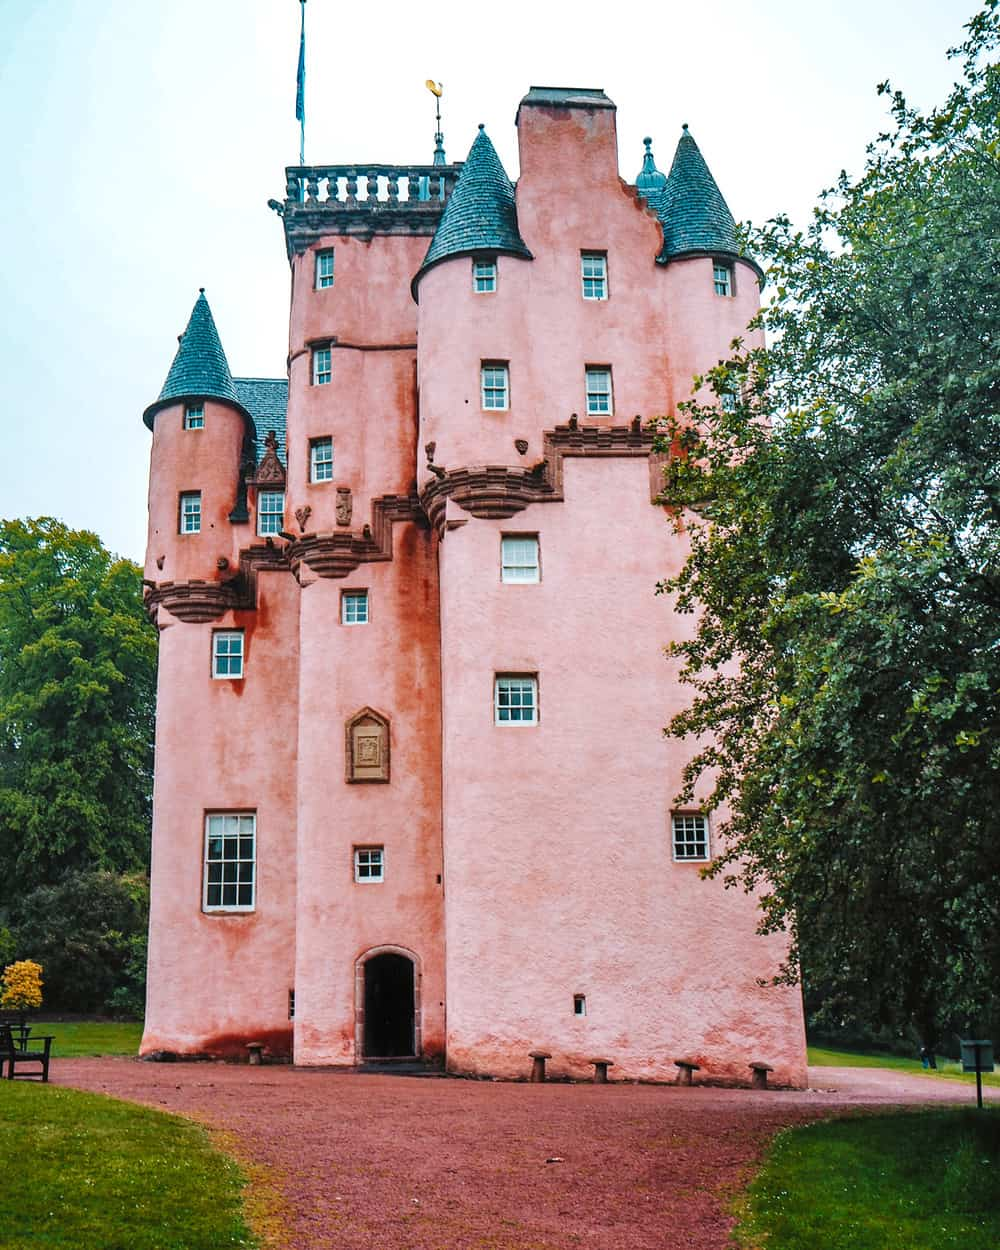 The pink castle in Scotland